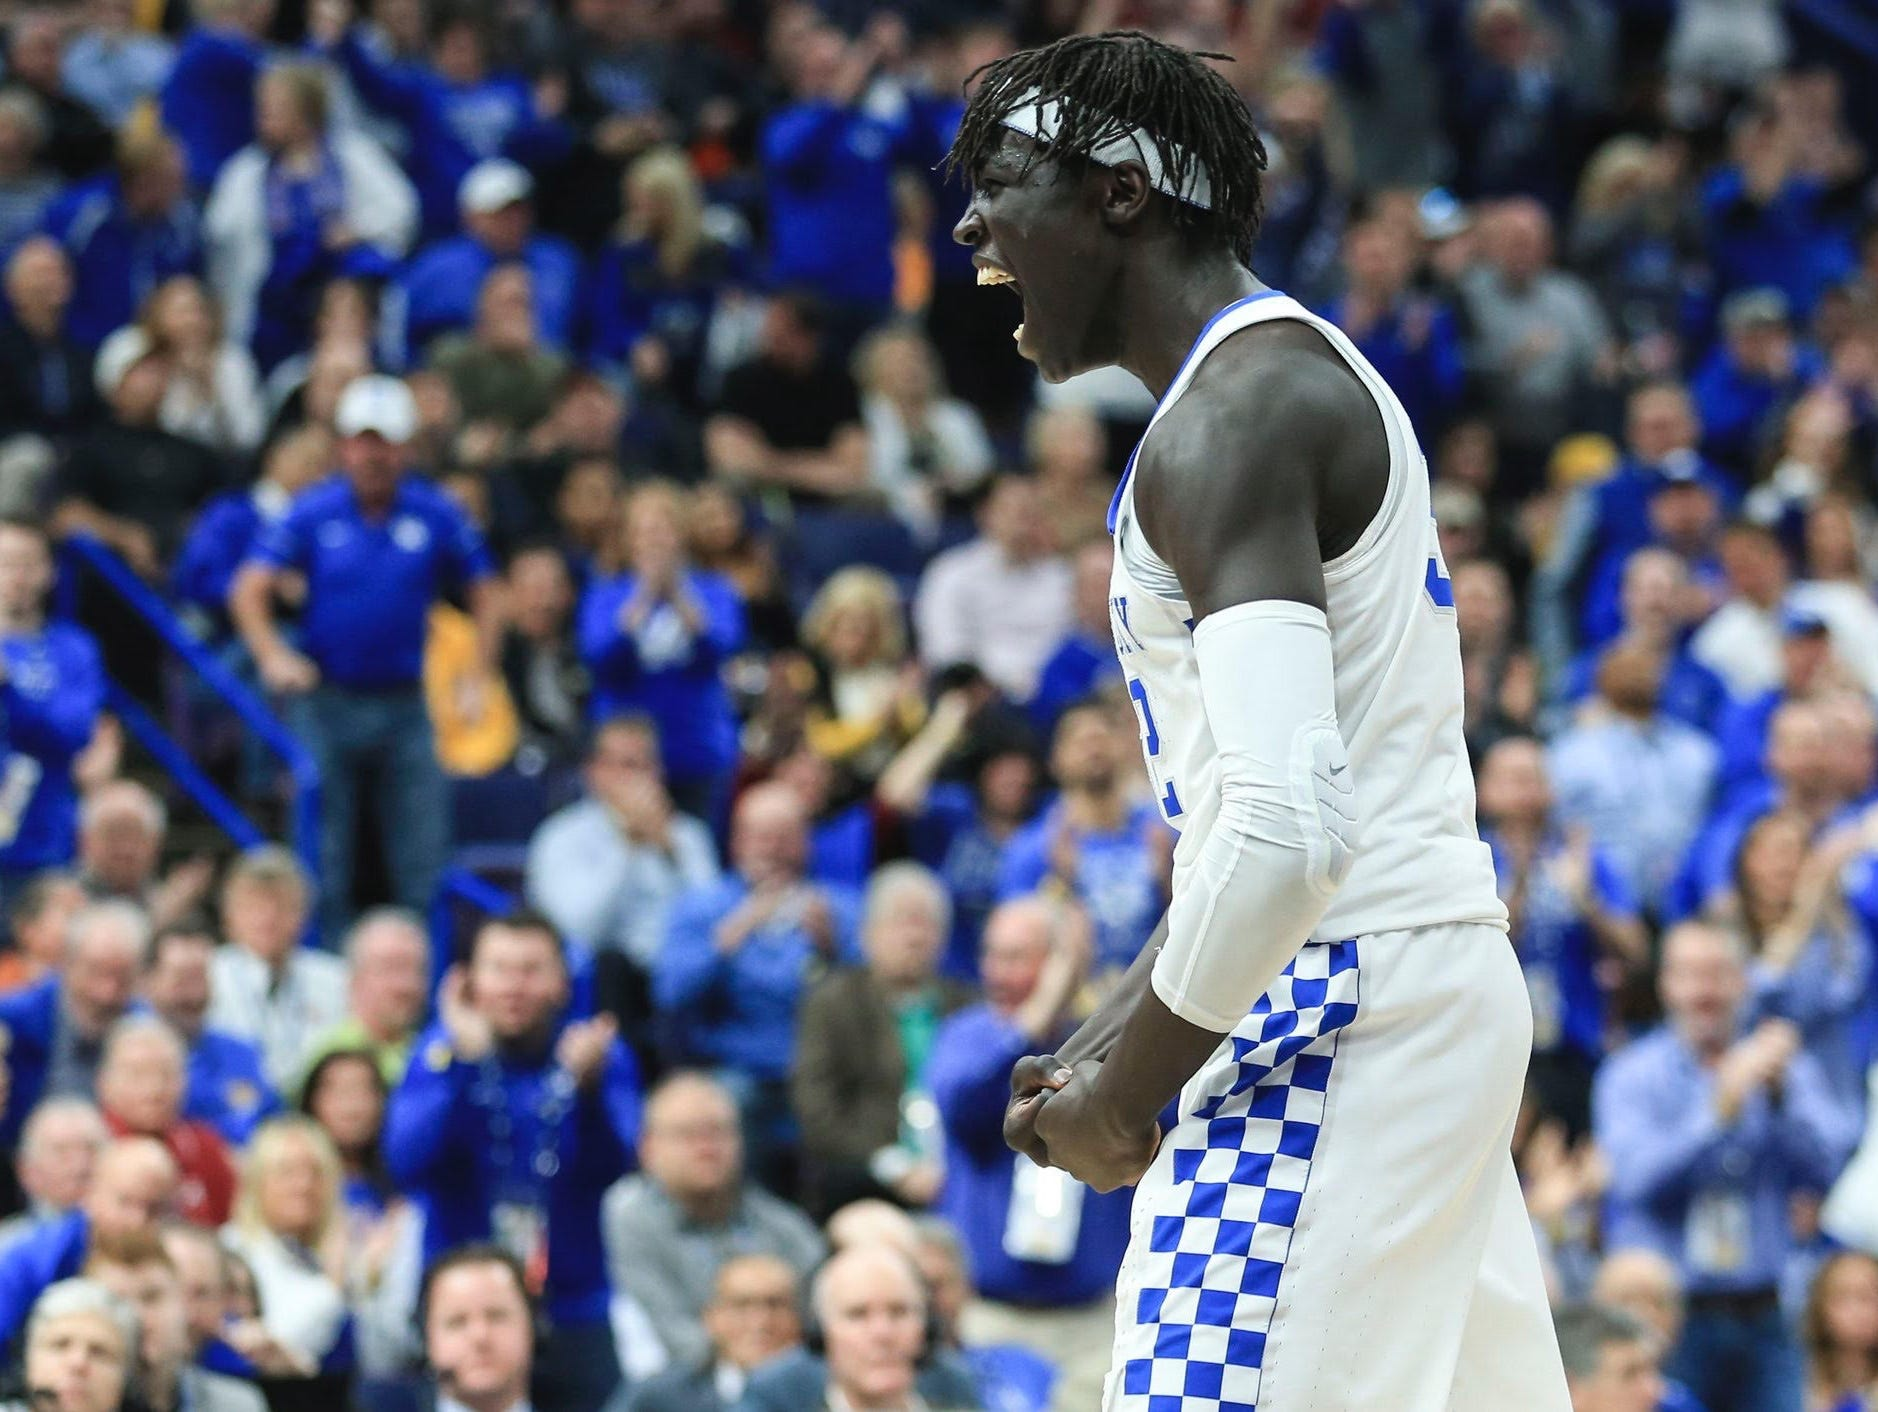 UK forward Wenyen Gabriel celebrates during the first half of the Wildcats' SEC Tournament game against Alabama.